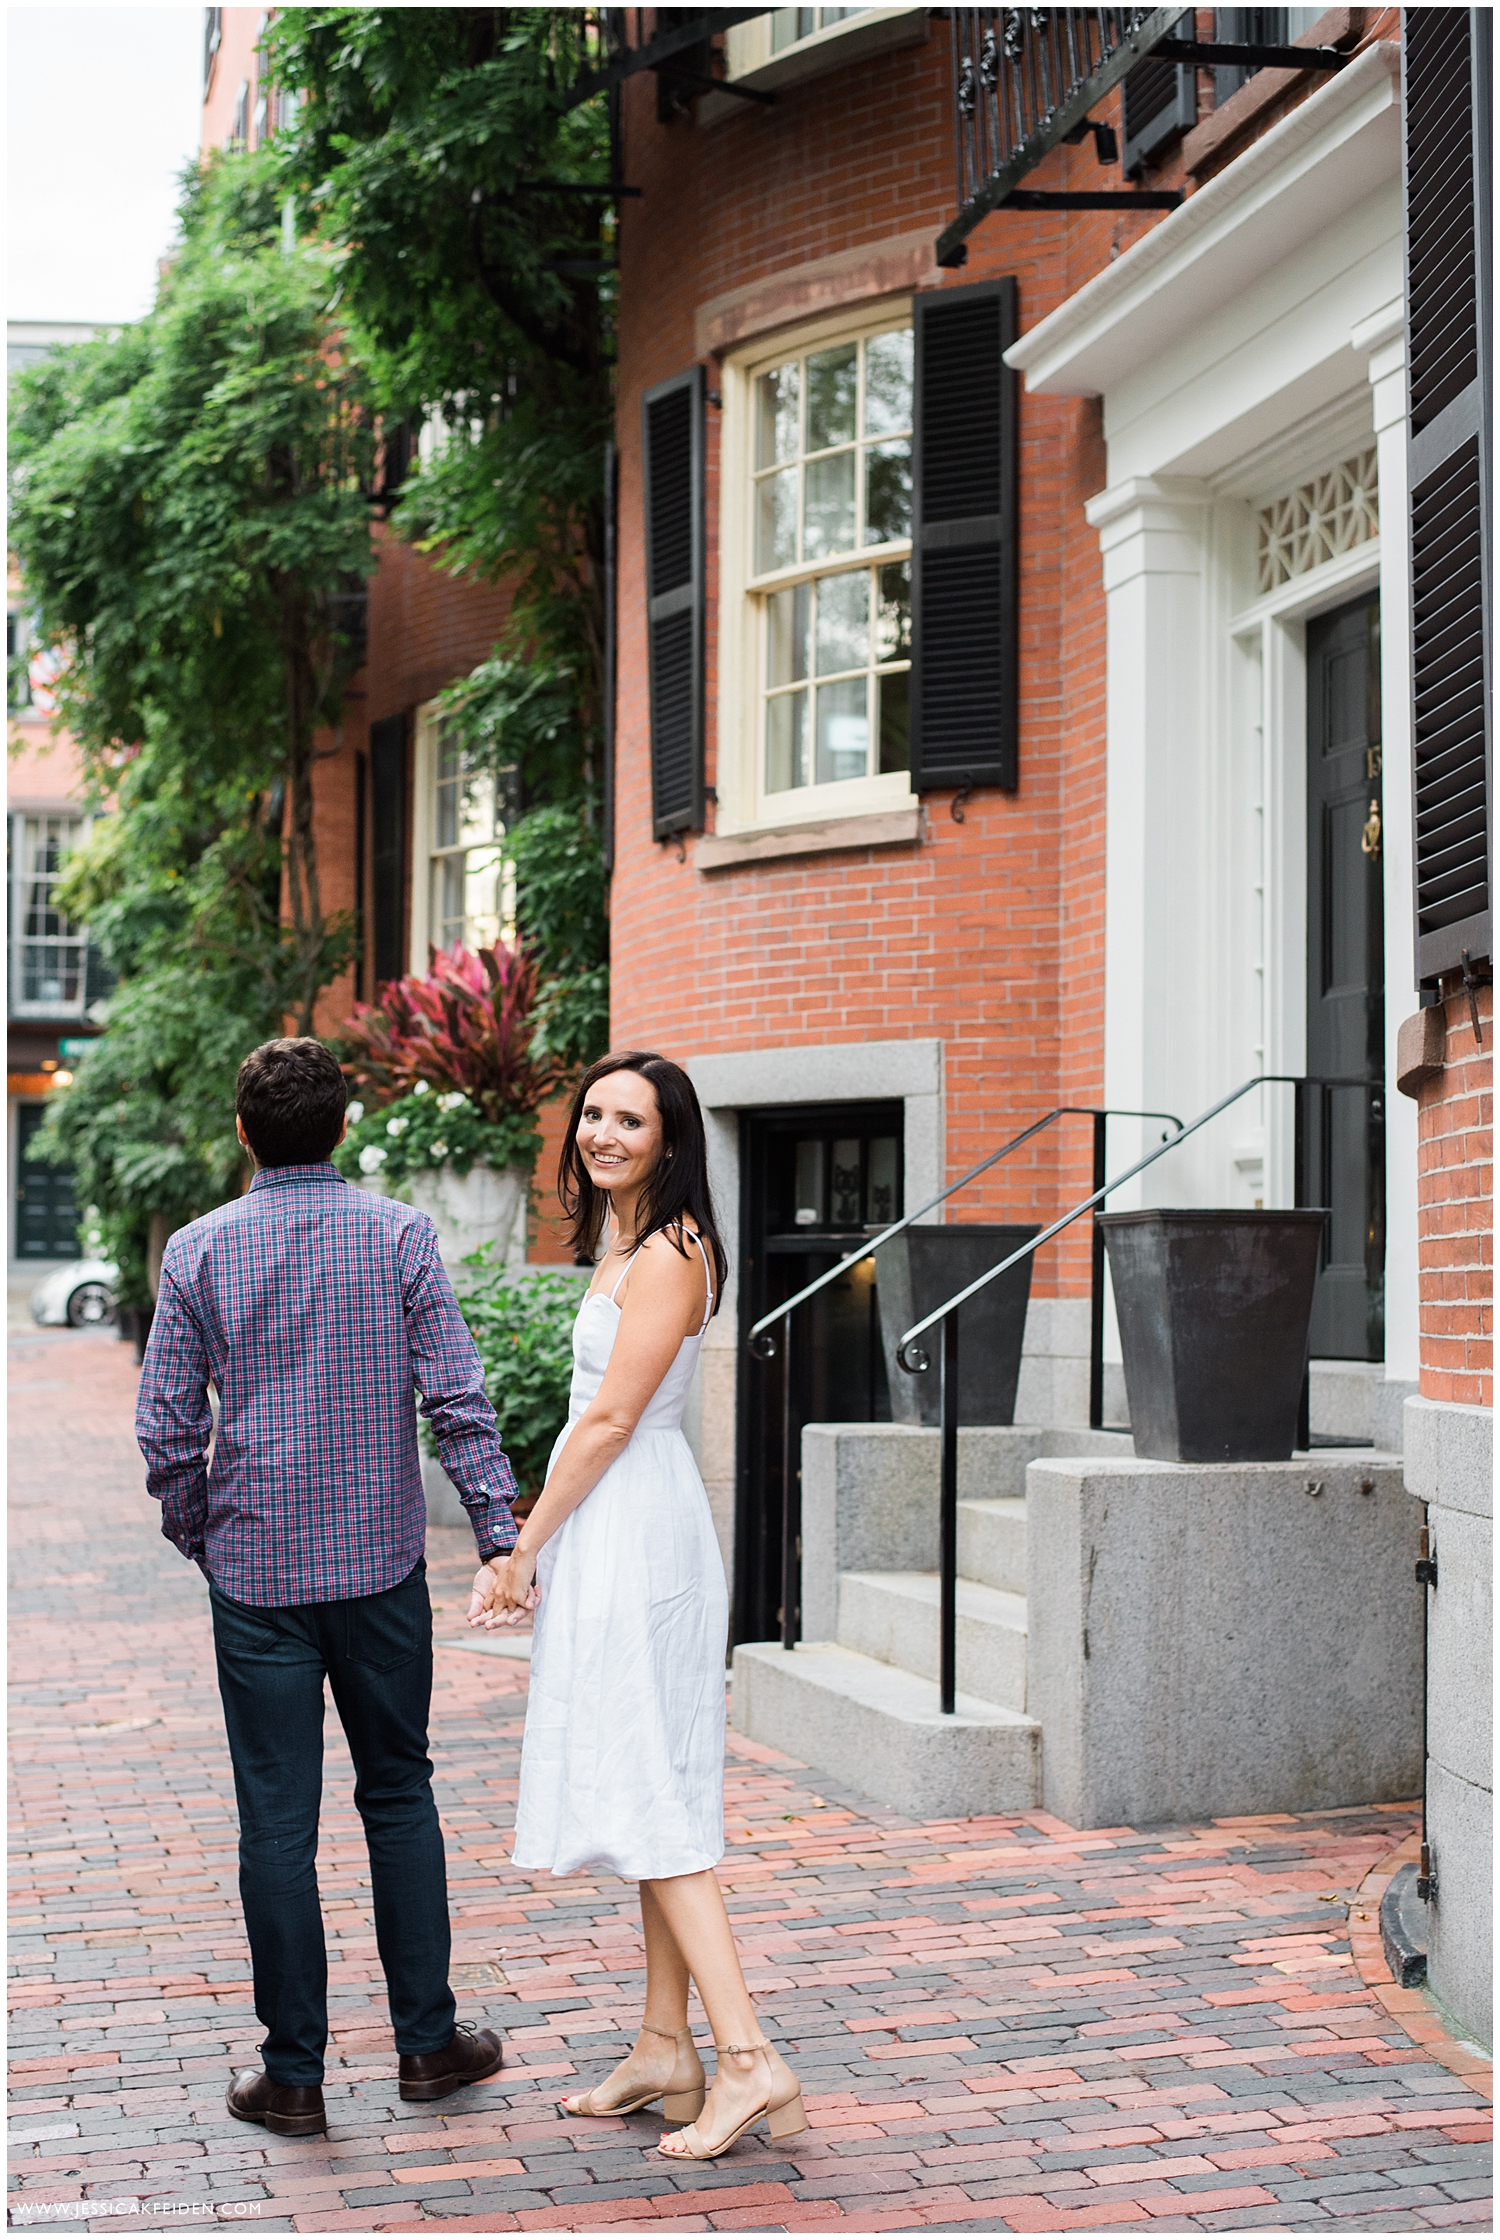 Jessica K Feiden Photography_Beacon Hill Boston Engagement Session Photographer_0007.jpg